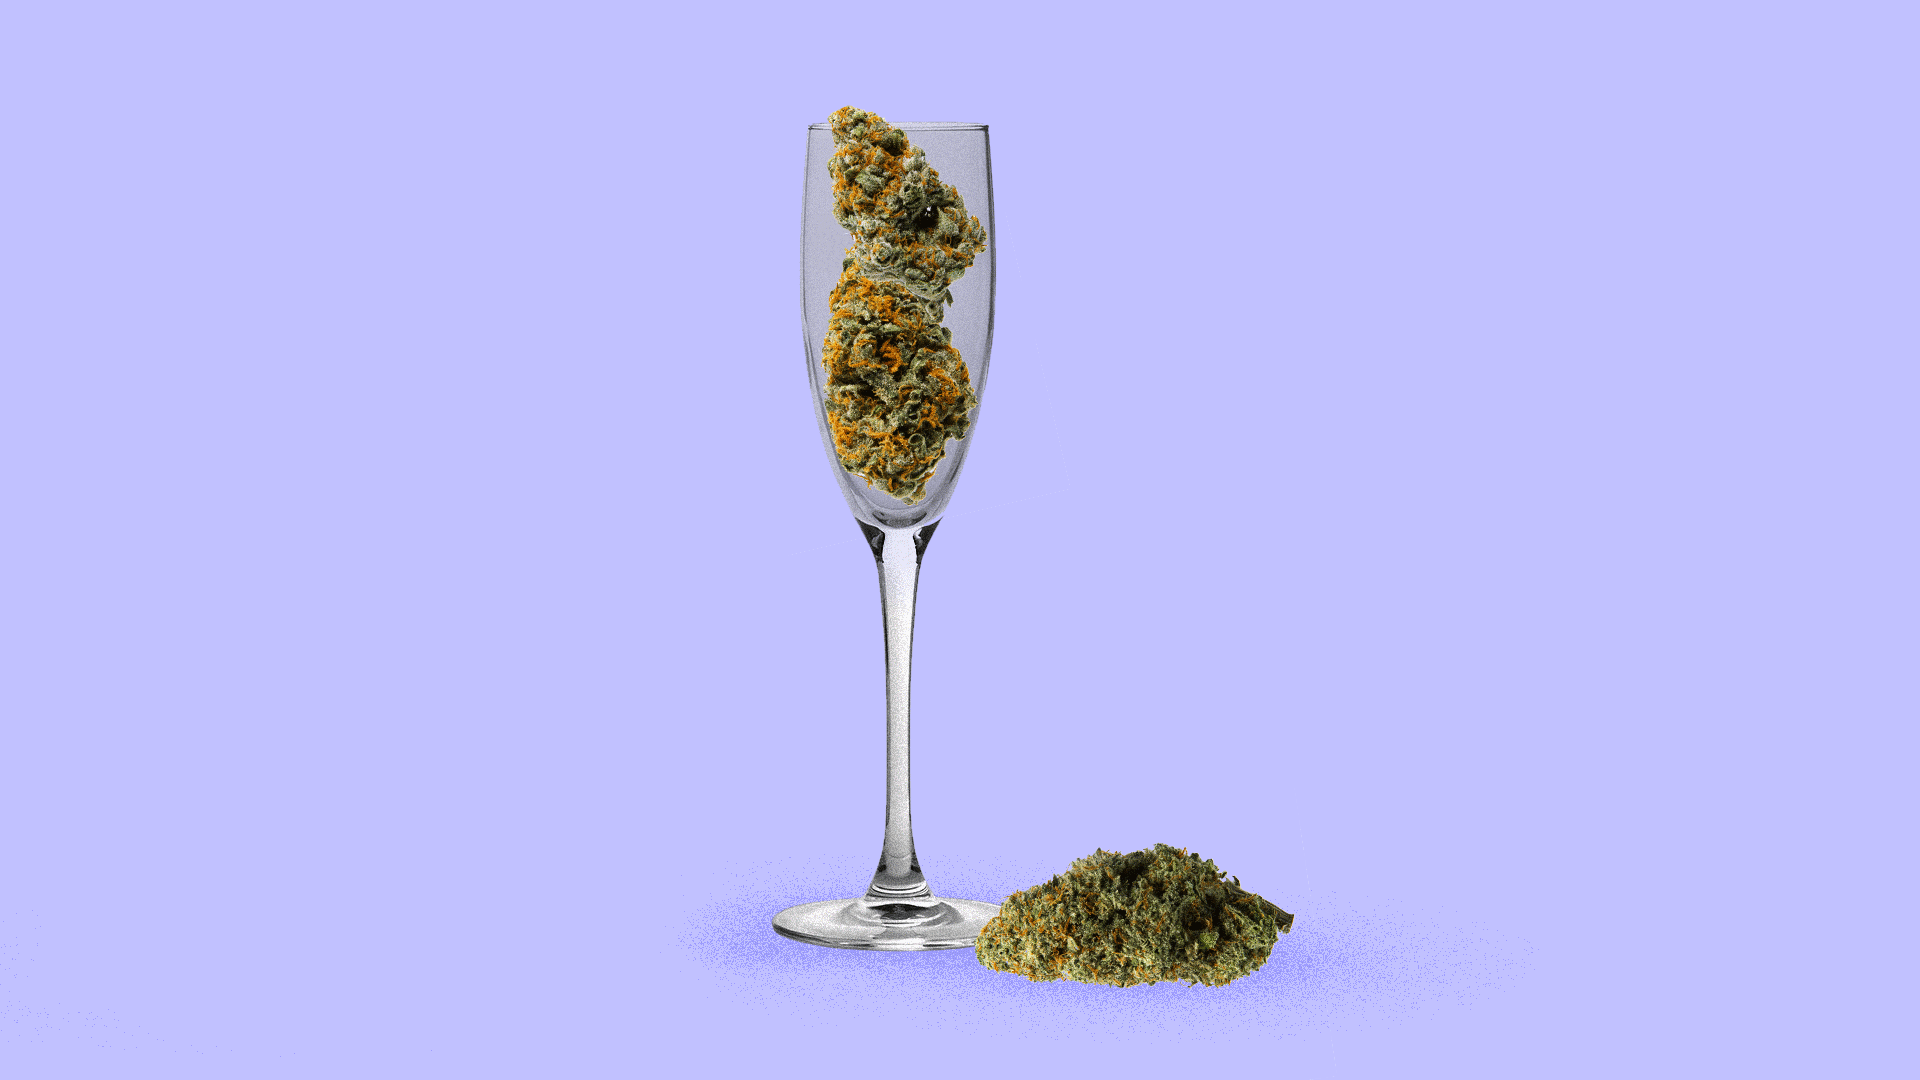 Illustration of marijuana buds in a champagne flute.